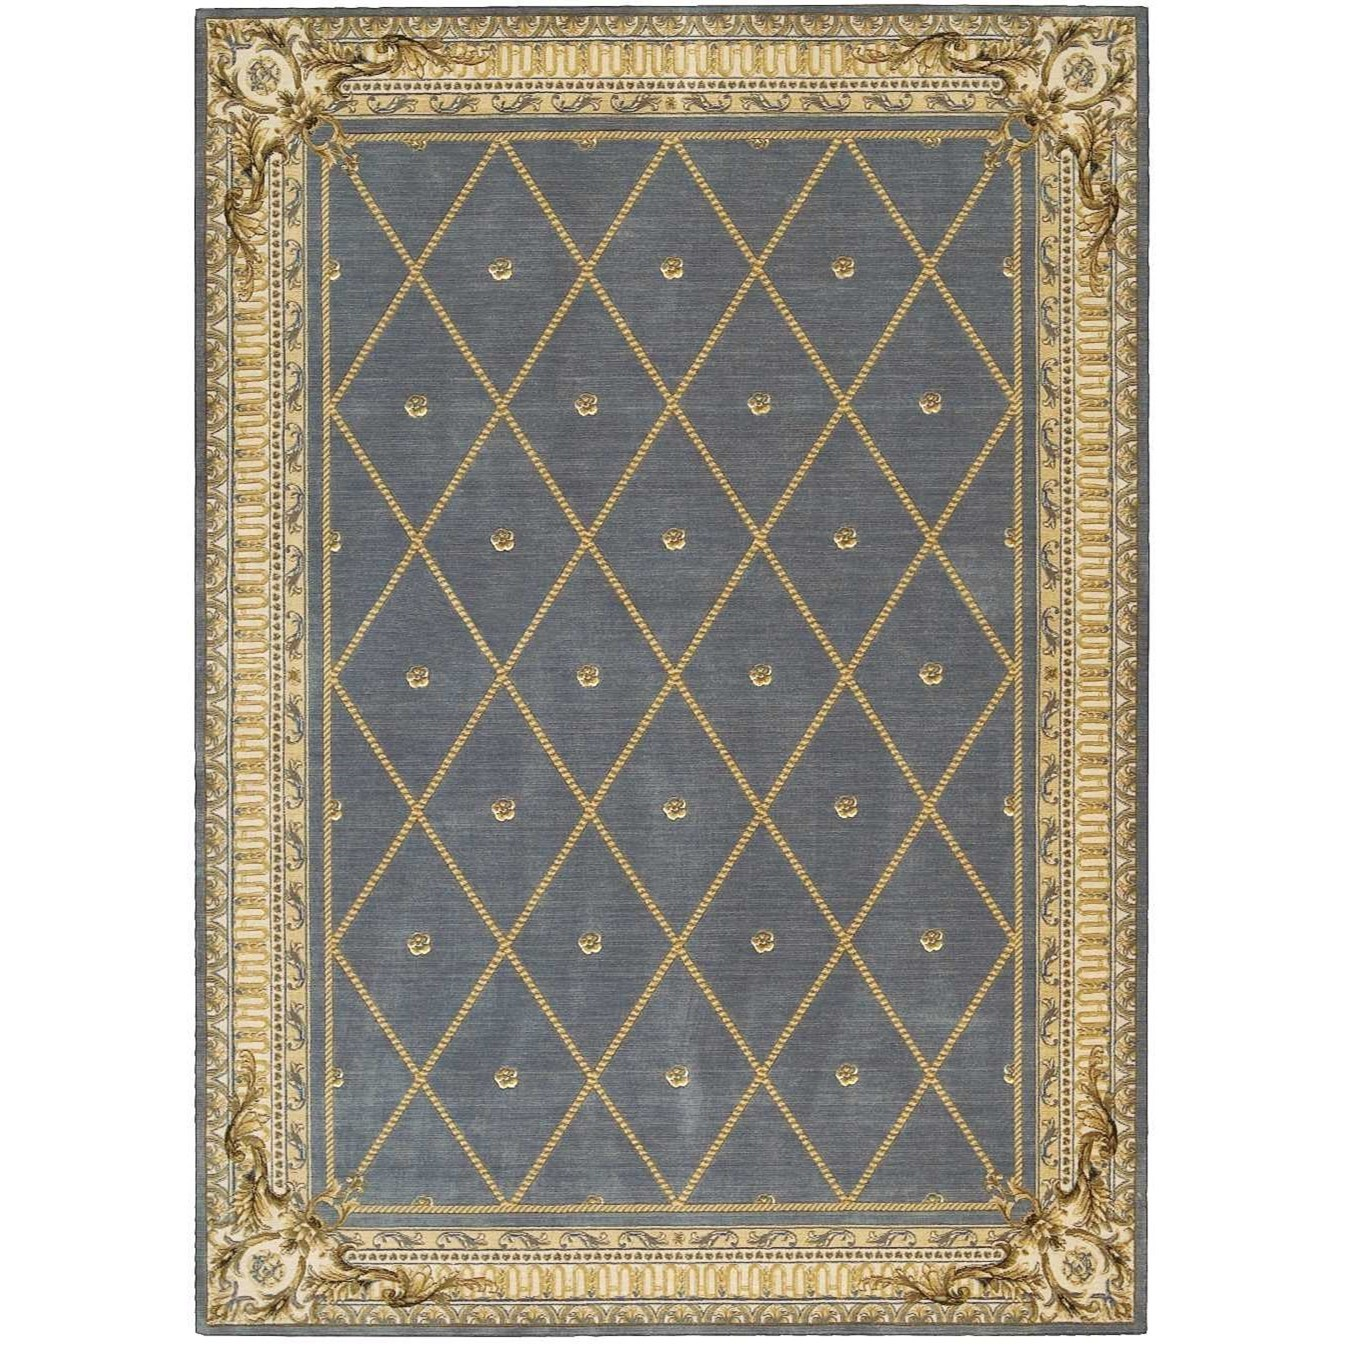 "9'6"" x 13' Blue Rectangle Rug"